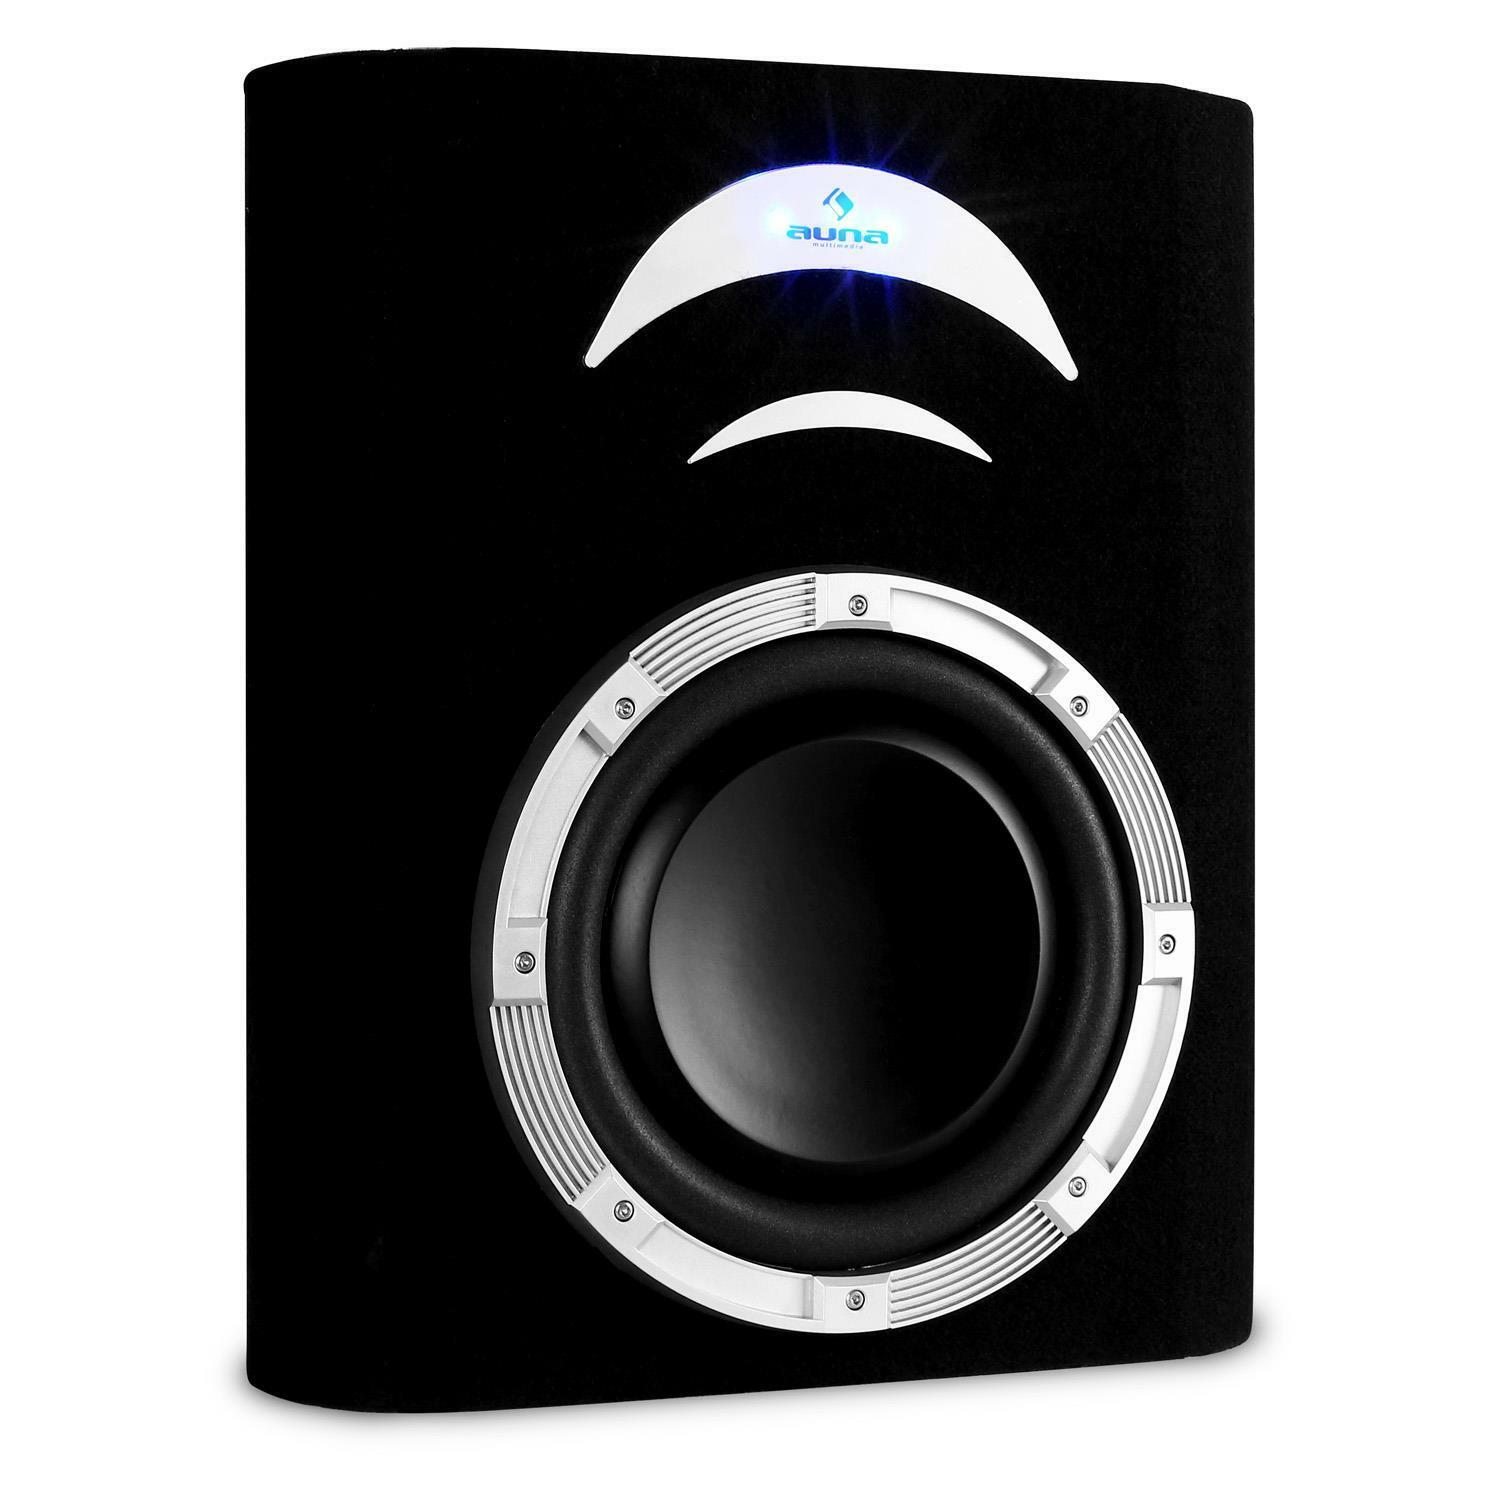 caisson de basses voiture subwoofer plat 25cm auto sono 500w effet lumineux led eur 76 99. Black Bedroom Furniture Sets. Home Design Ideas